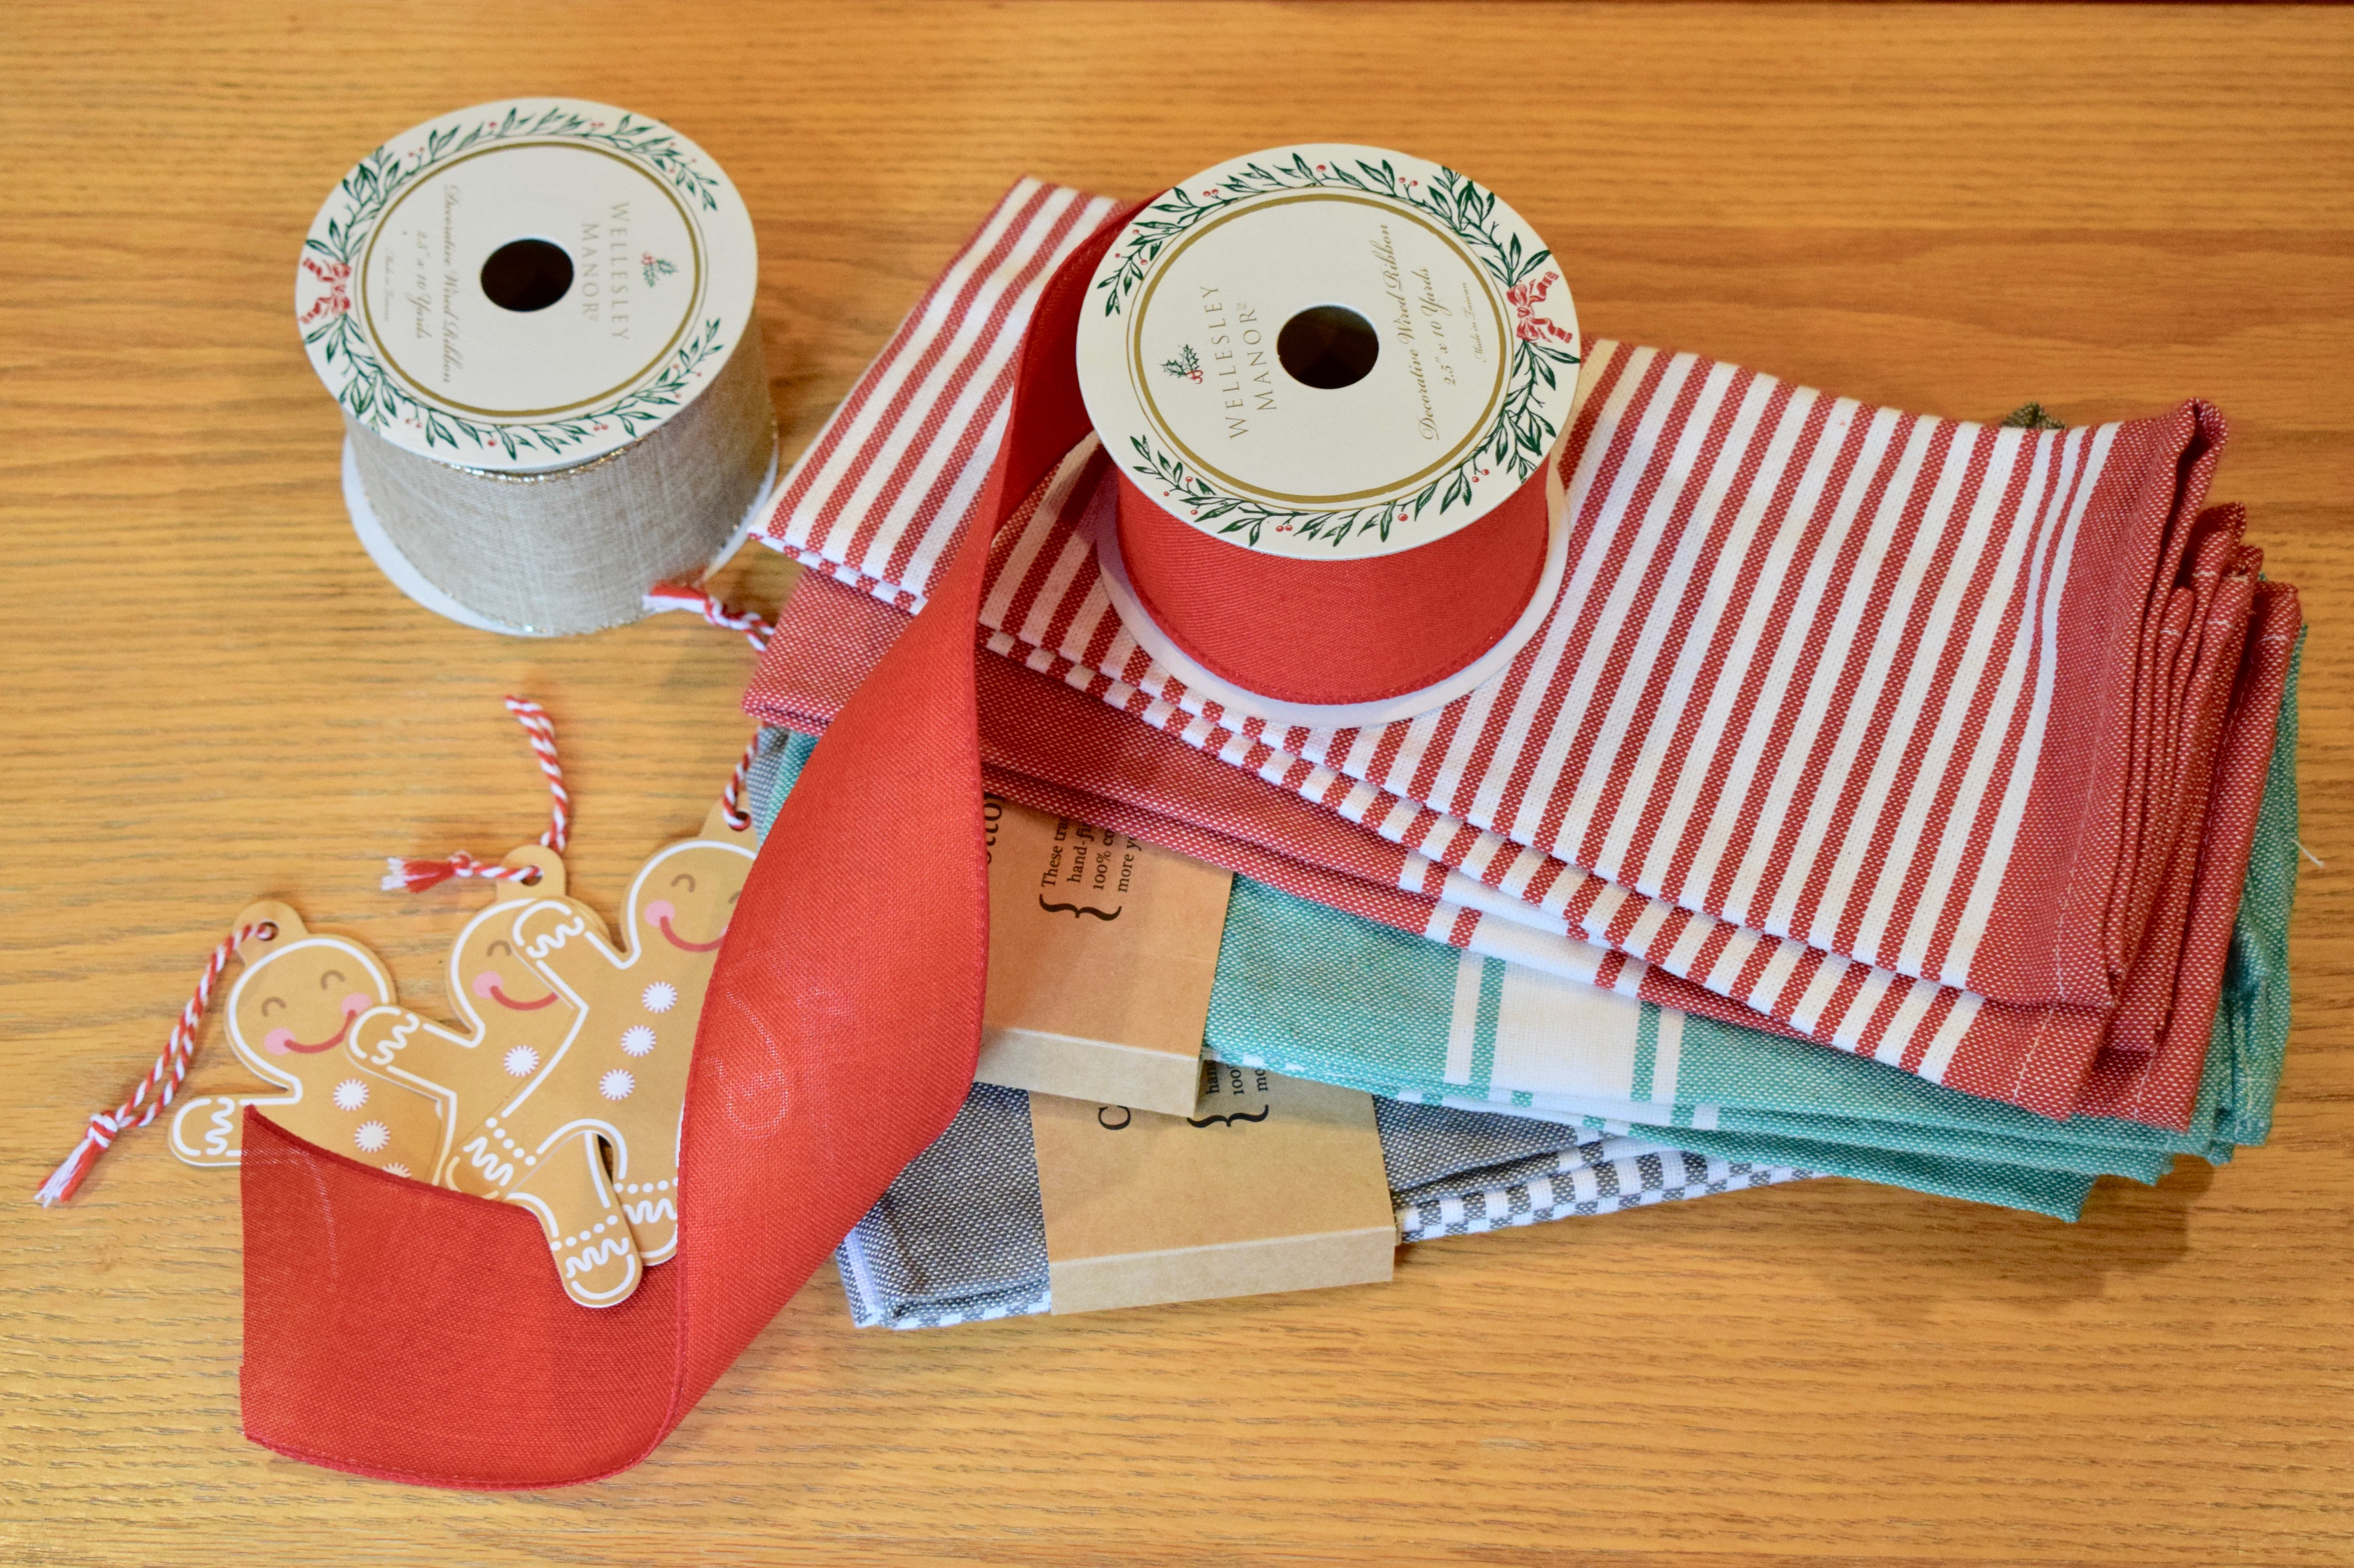 Supplies Needed for Wrapping Gifts in Kitchen Towels, Reusable Gift Wrapping